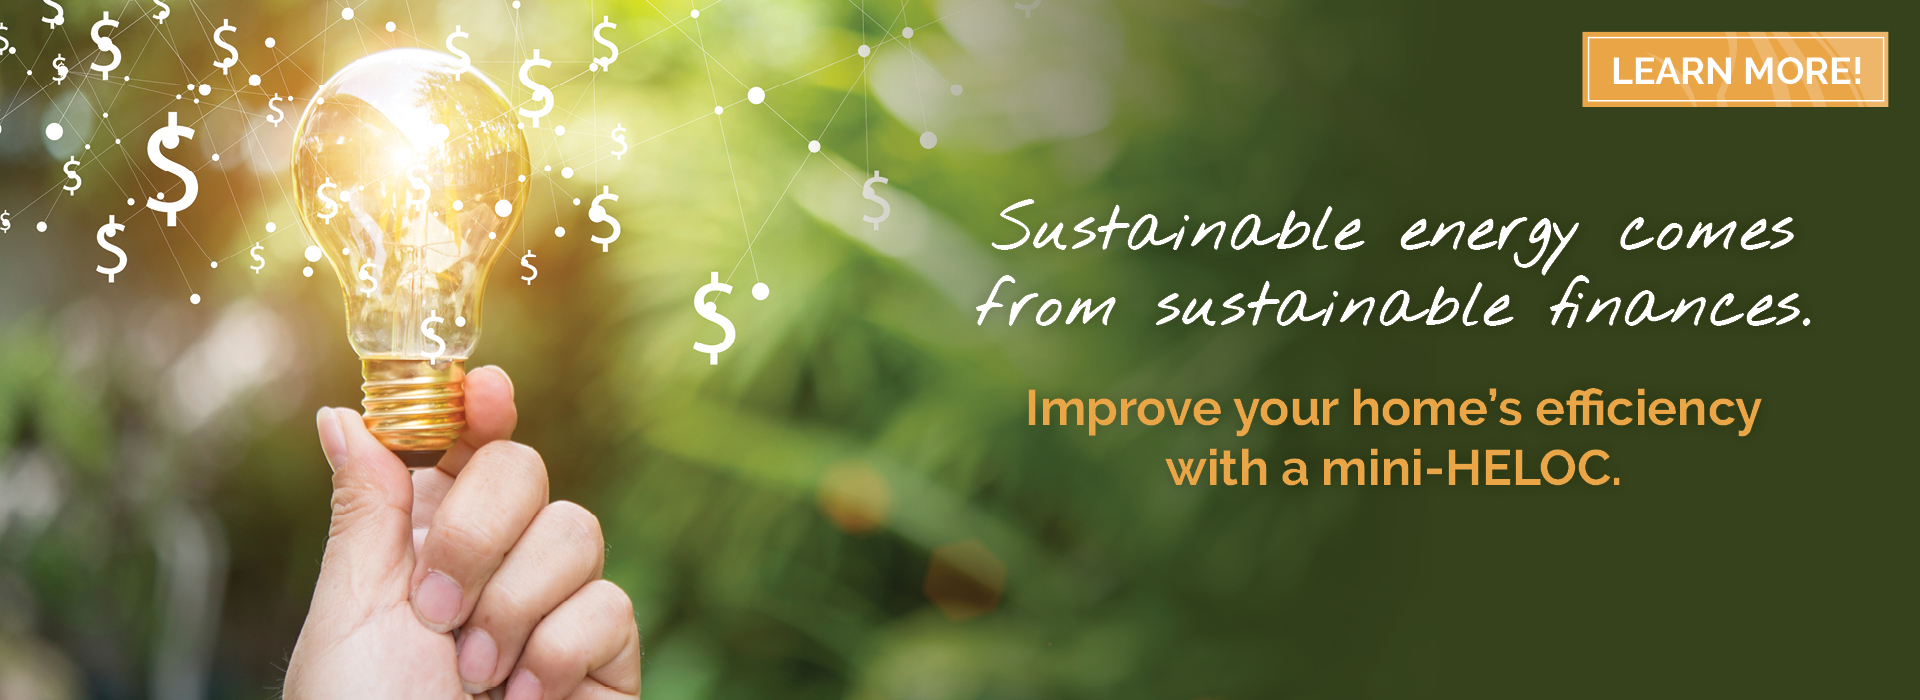 Sustainable finances